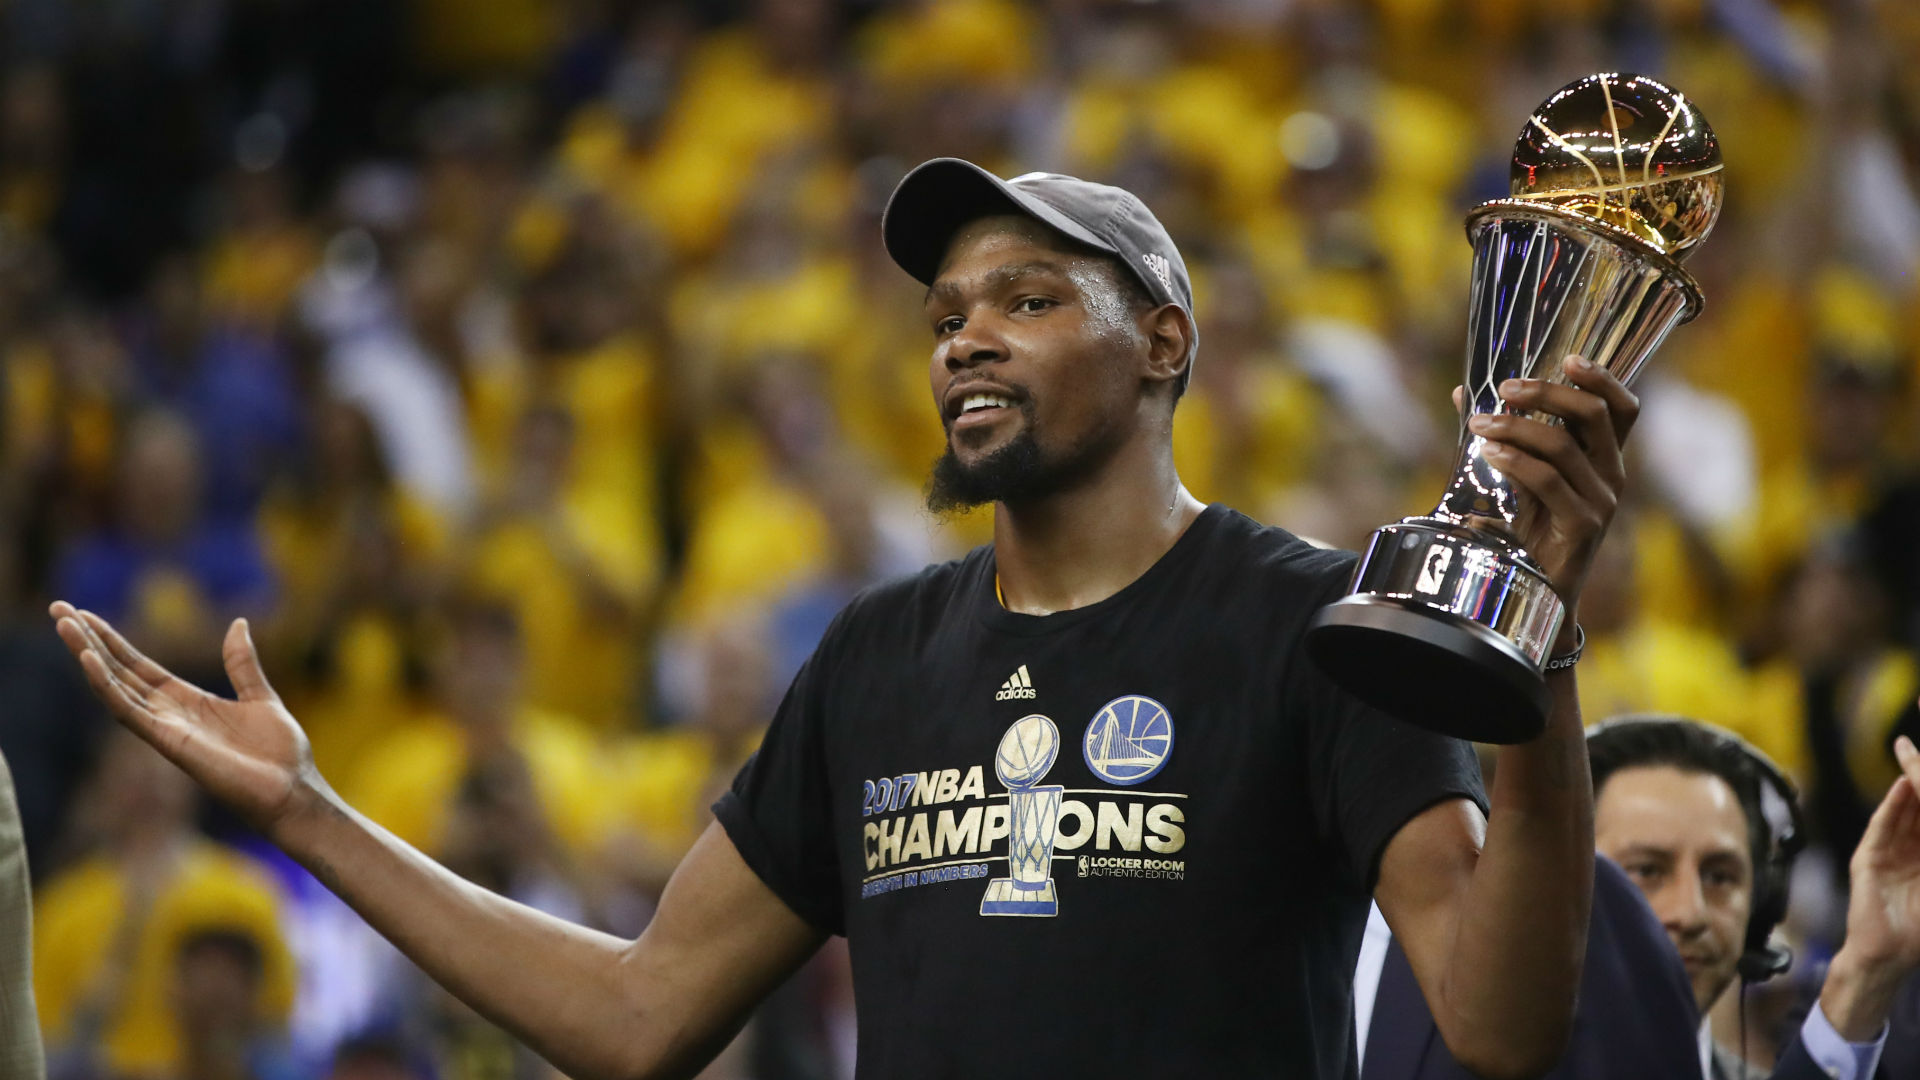 Kevin Durant's Mom, Wanda, Stole The Show At Last Night's NBA Finals